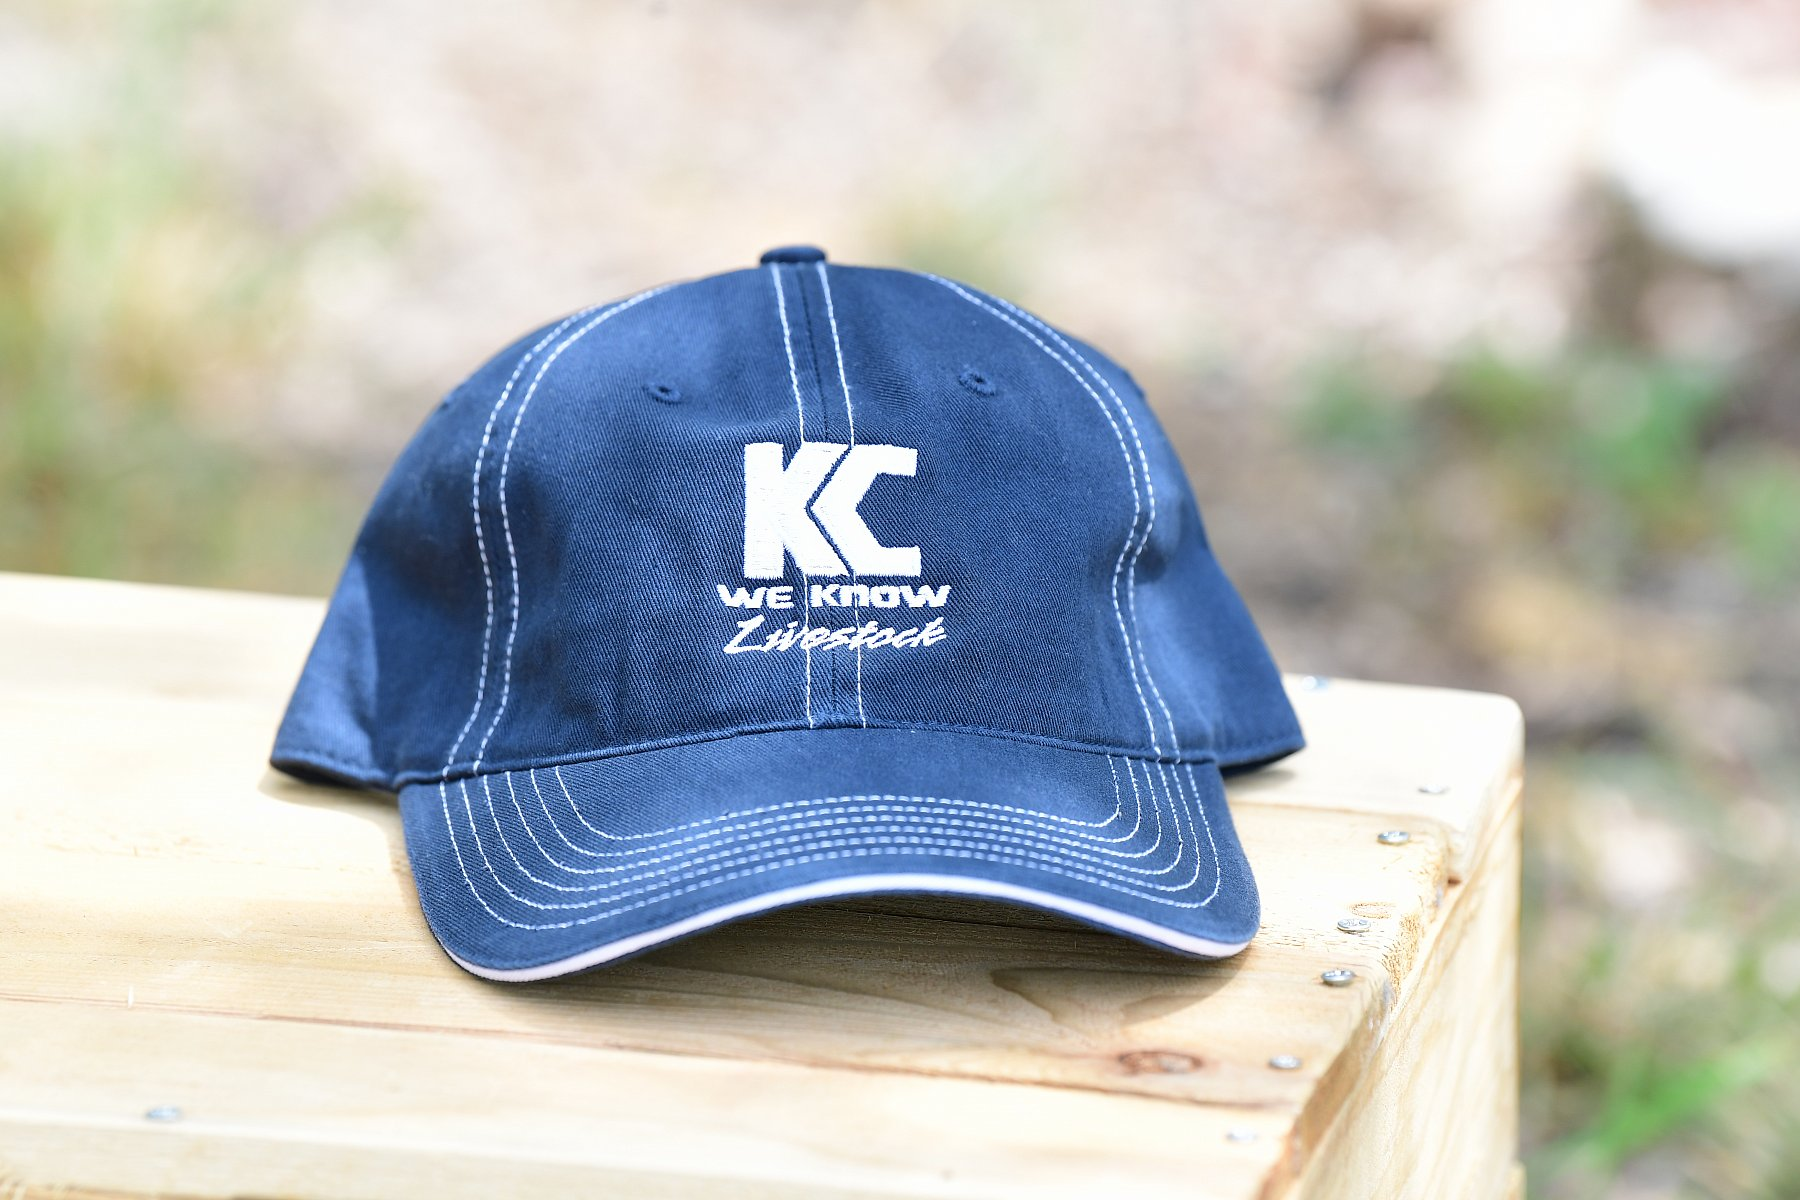 R-325 Style Hat Navy with logo | R325_KC5_3711.JPG